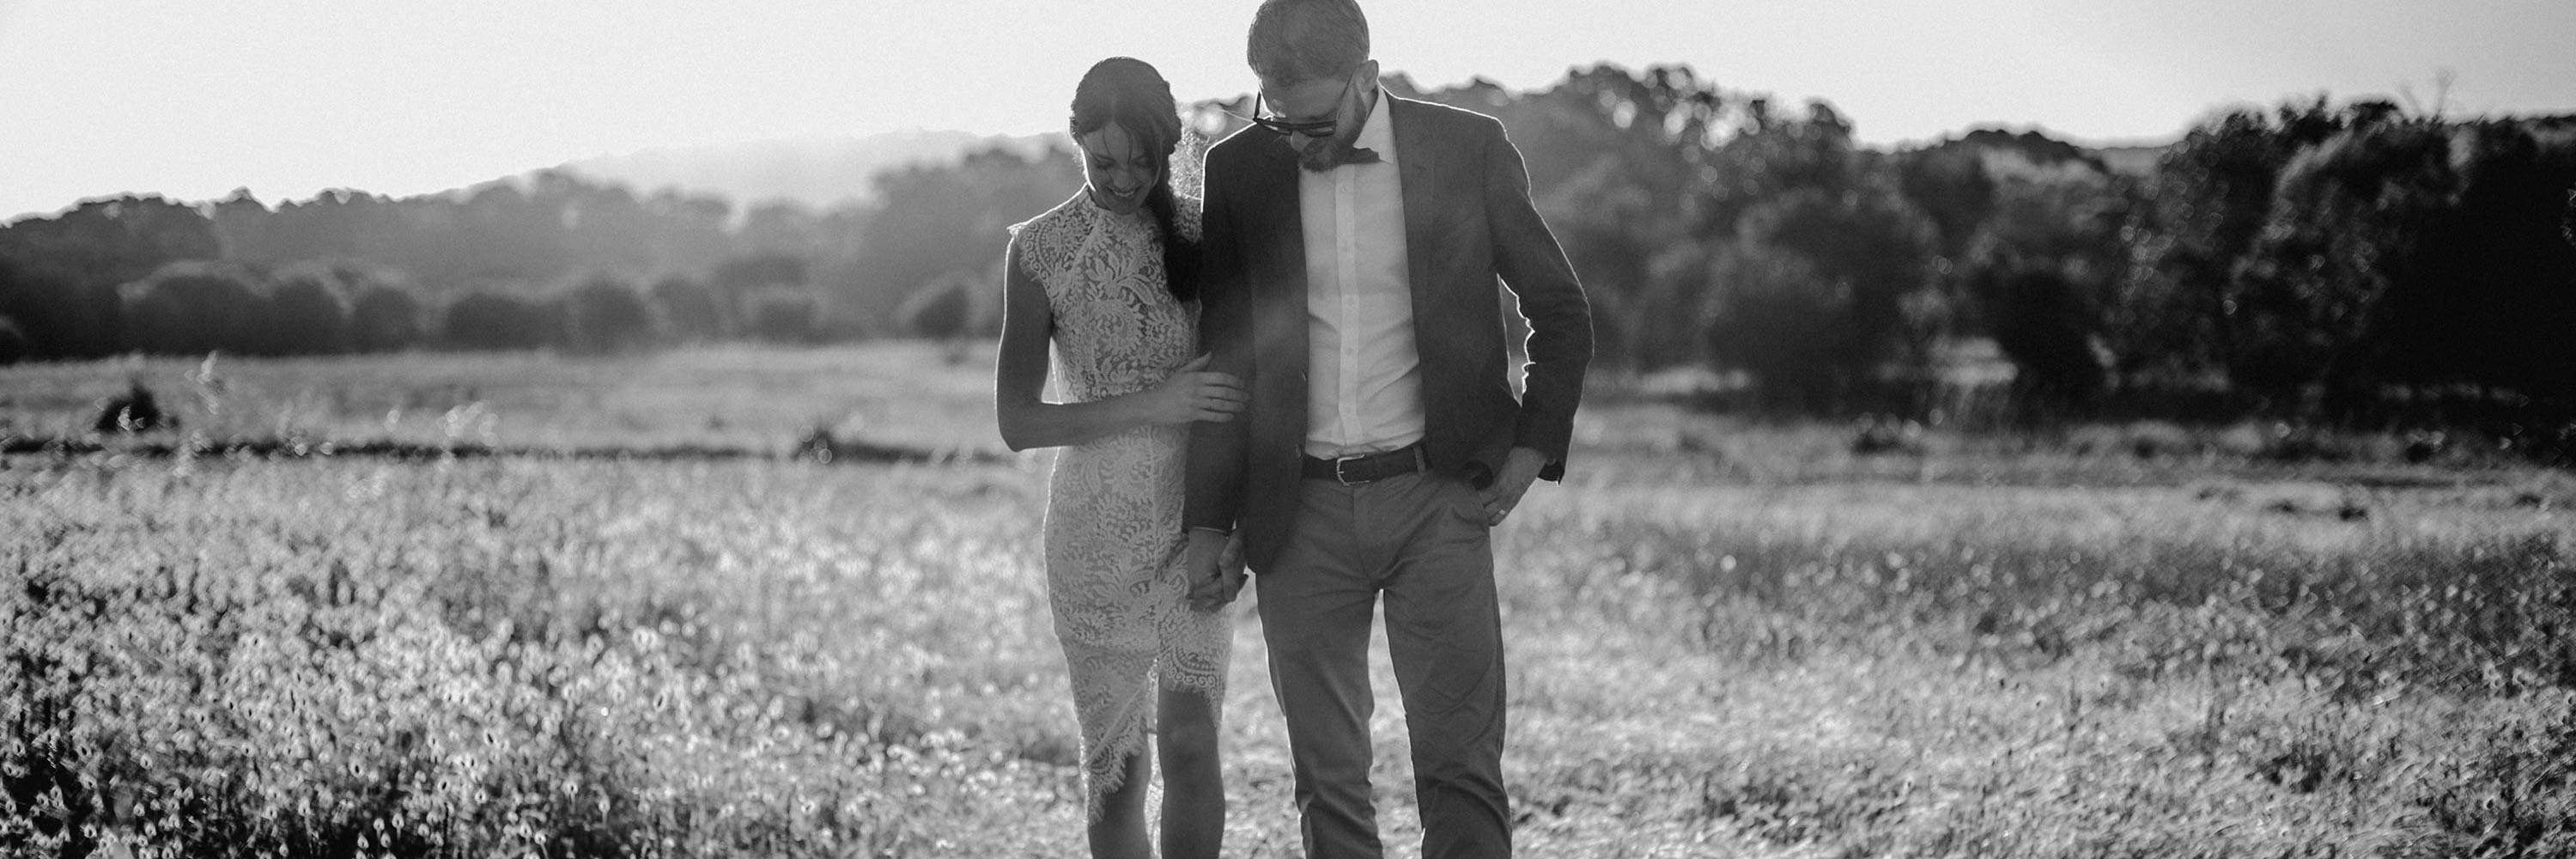 Wedding Photographer Margaret River, Shannon Stent Images | Margaret River Wedding Photographer. Margaret River Wedding Photography